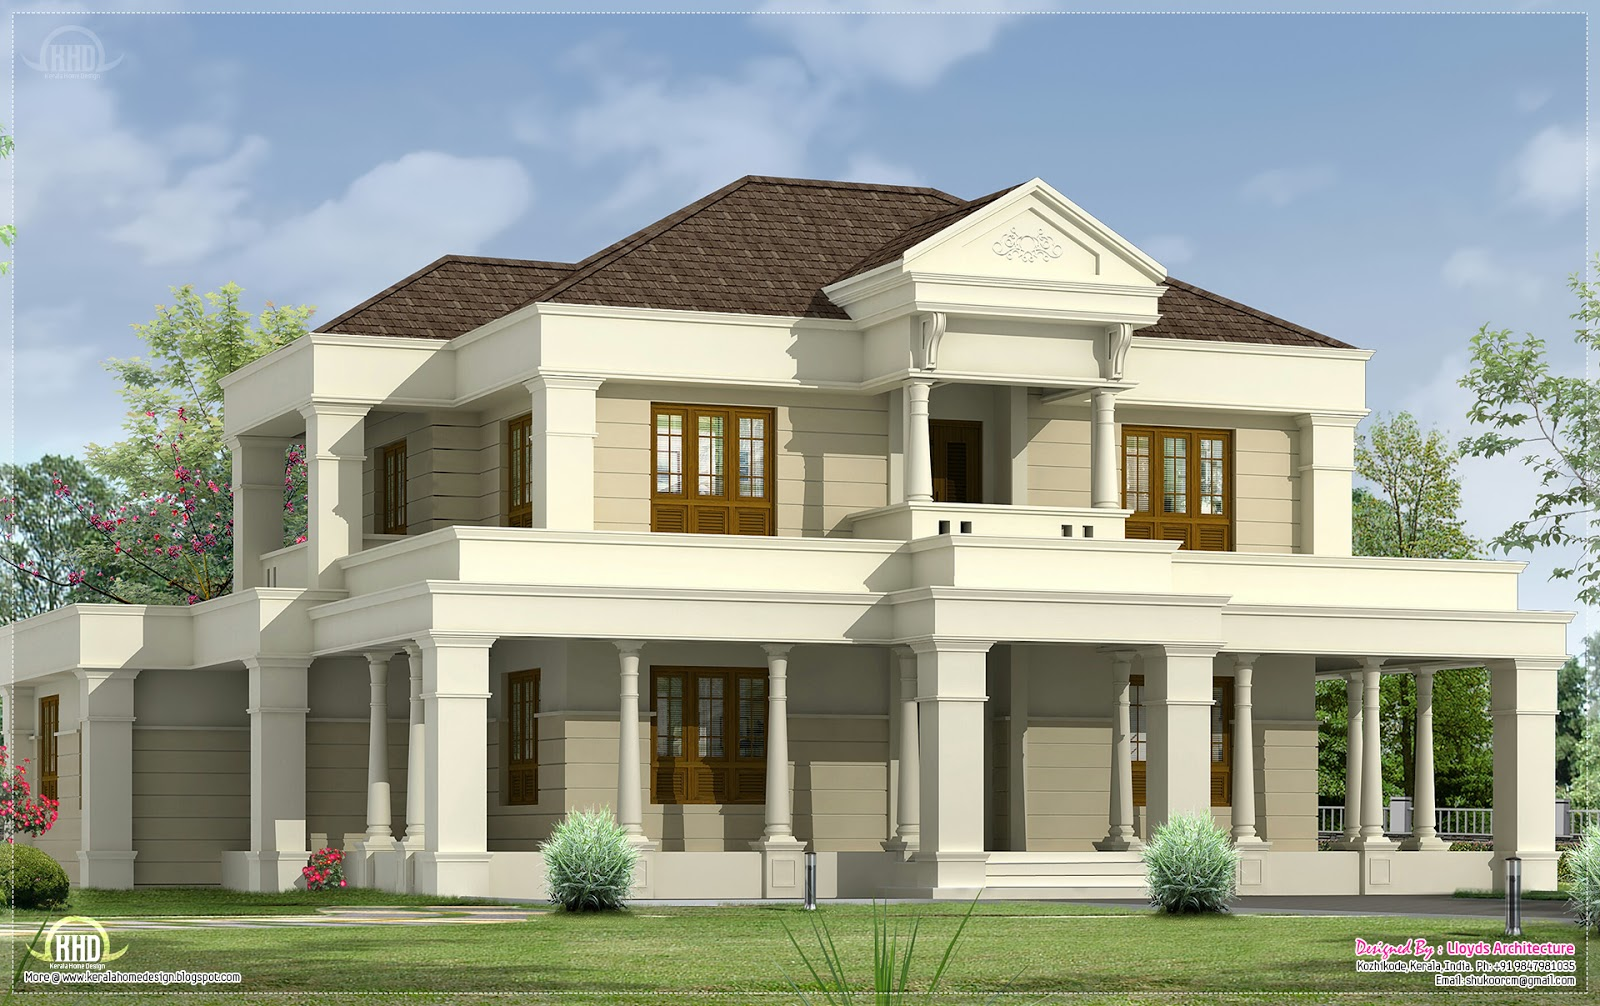 5 bedroom luxurious villa exterior design home kerala plans for 4 bedroom villa plans